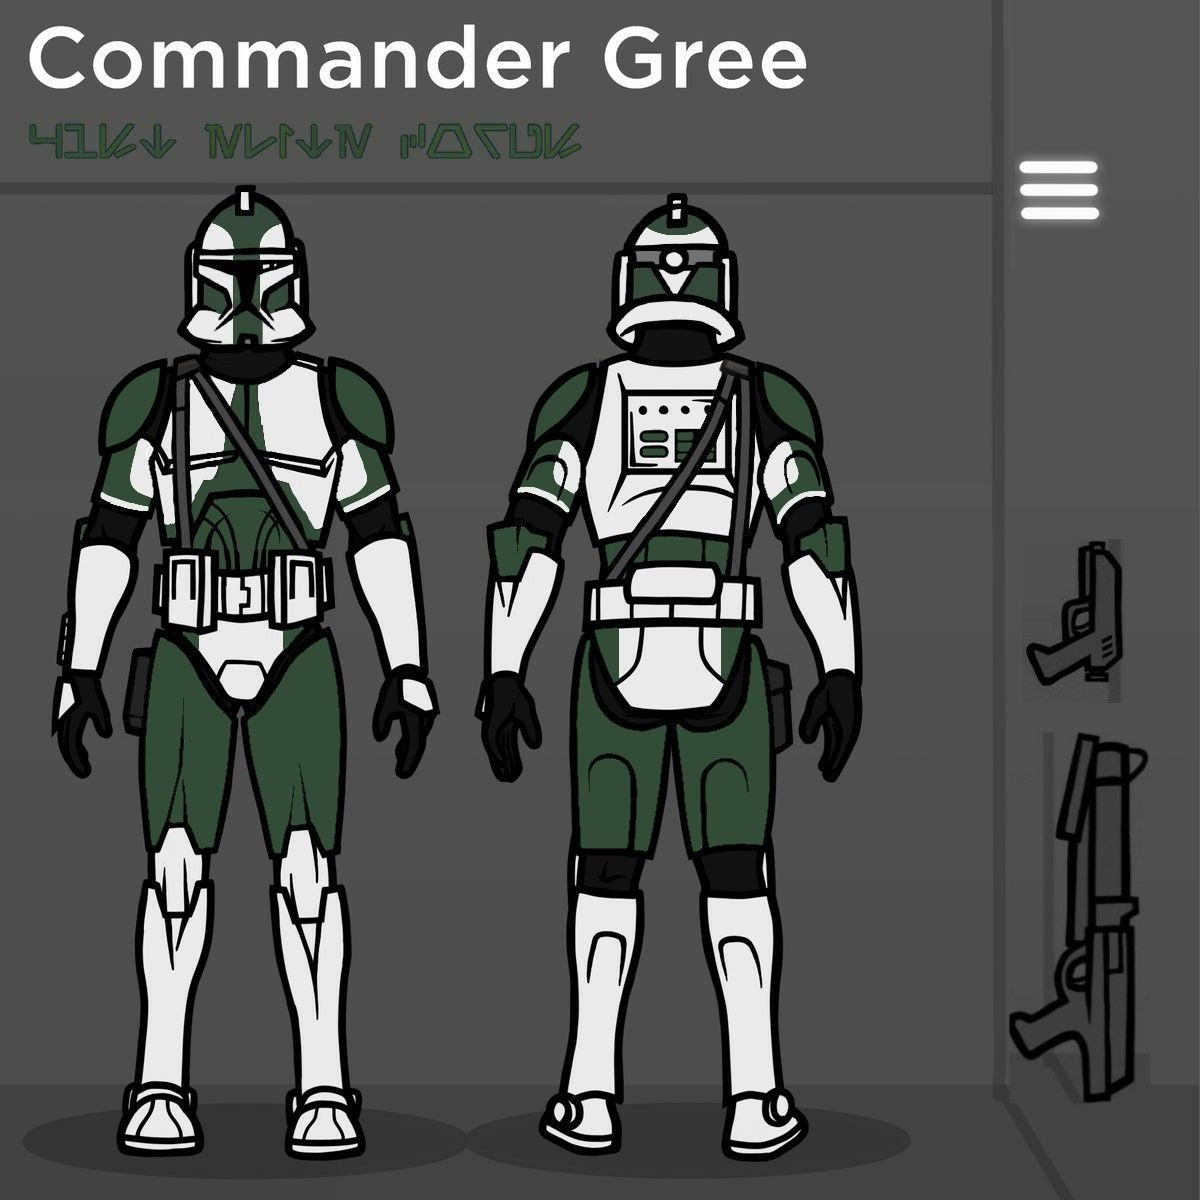 41st Commander Gree in 2020 Star wars pictures, Star